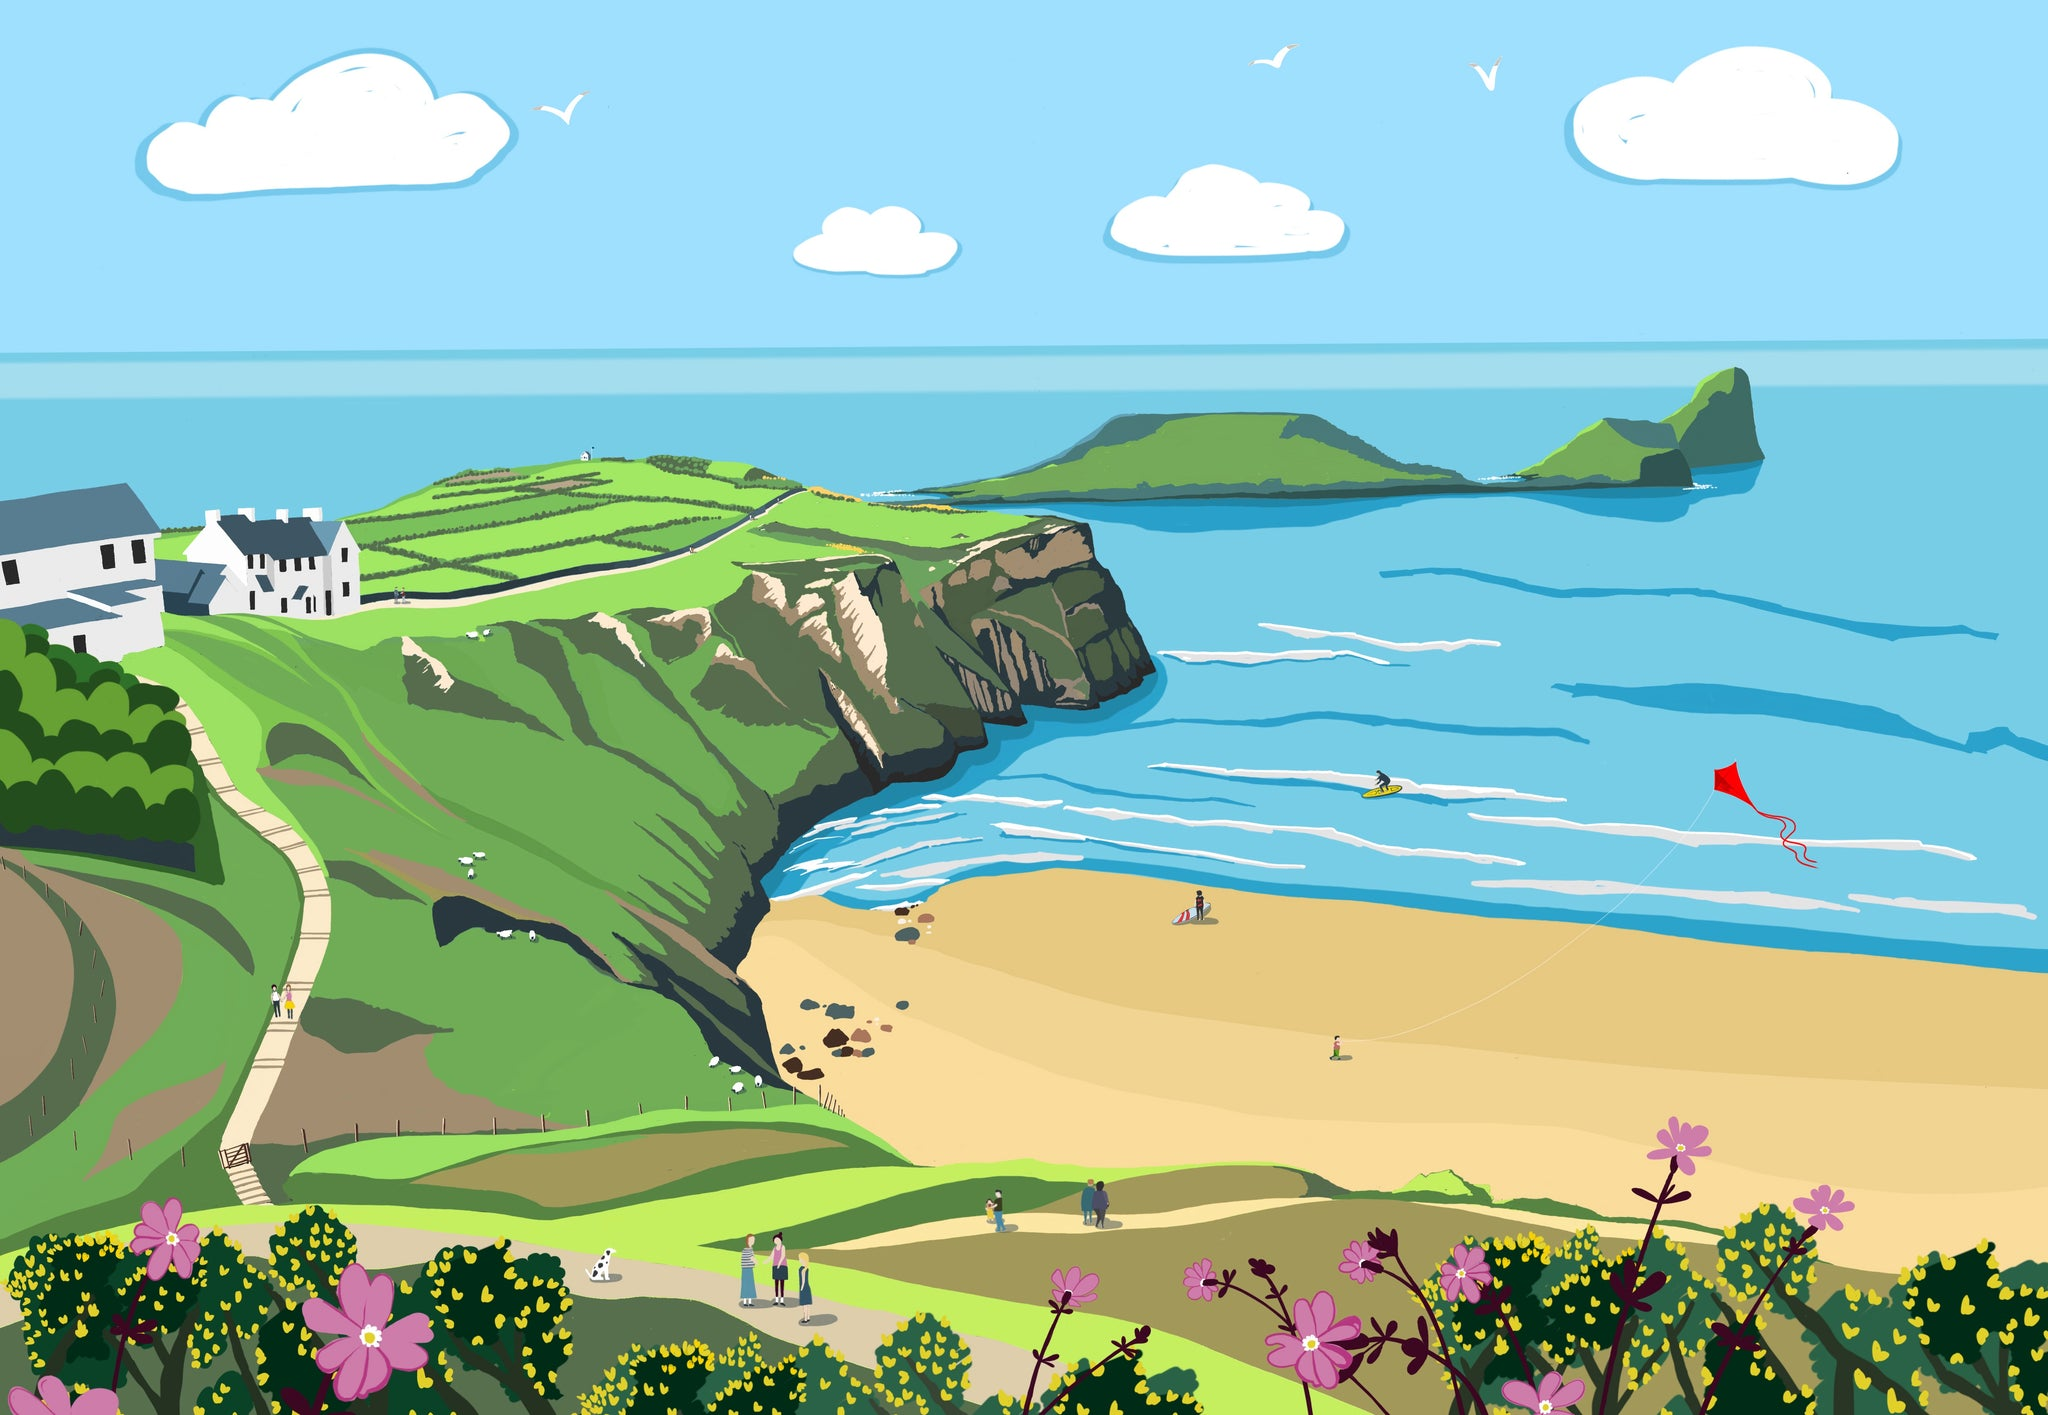 Worms Head Giclee Print sold on behalf of Noodle Design